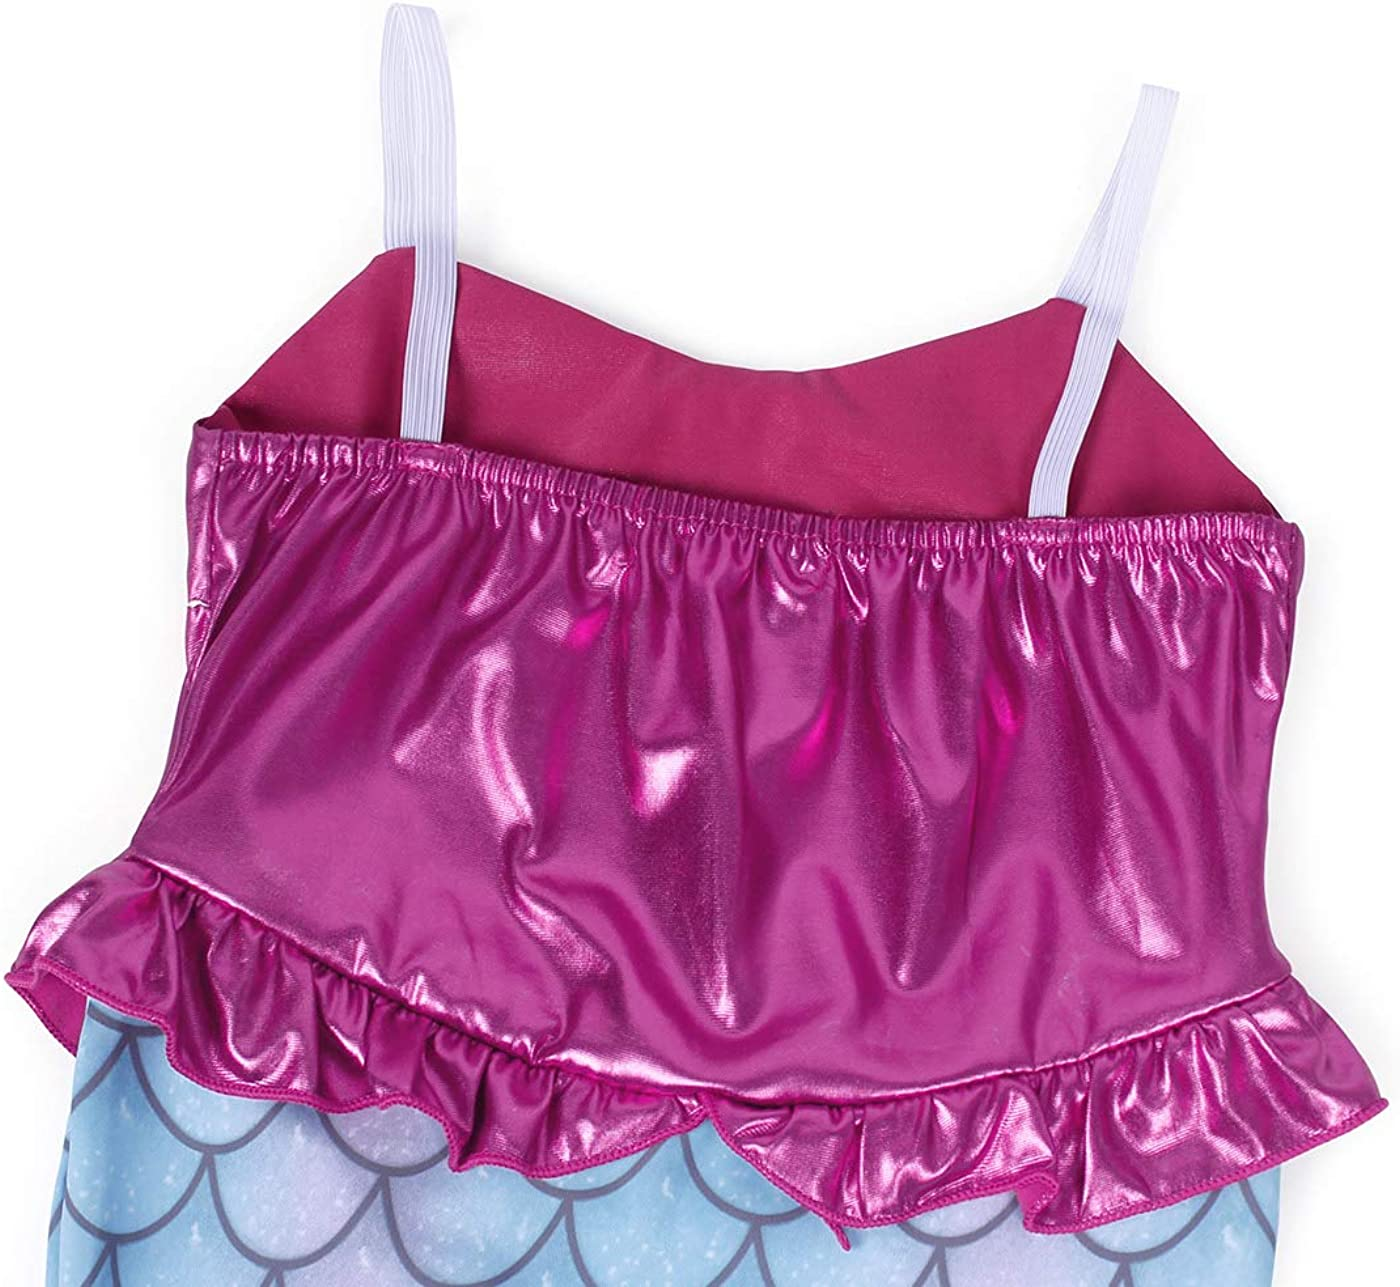 AmzBarley Girls Princess Mermaid Costume Outfits Halloween Party Birthday Sequins Strappy Dress